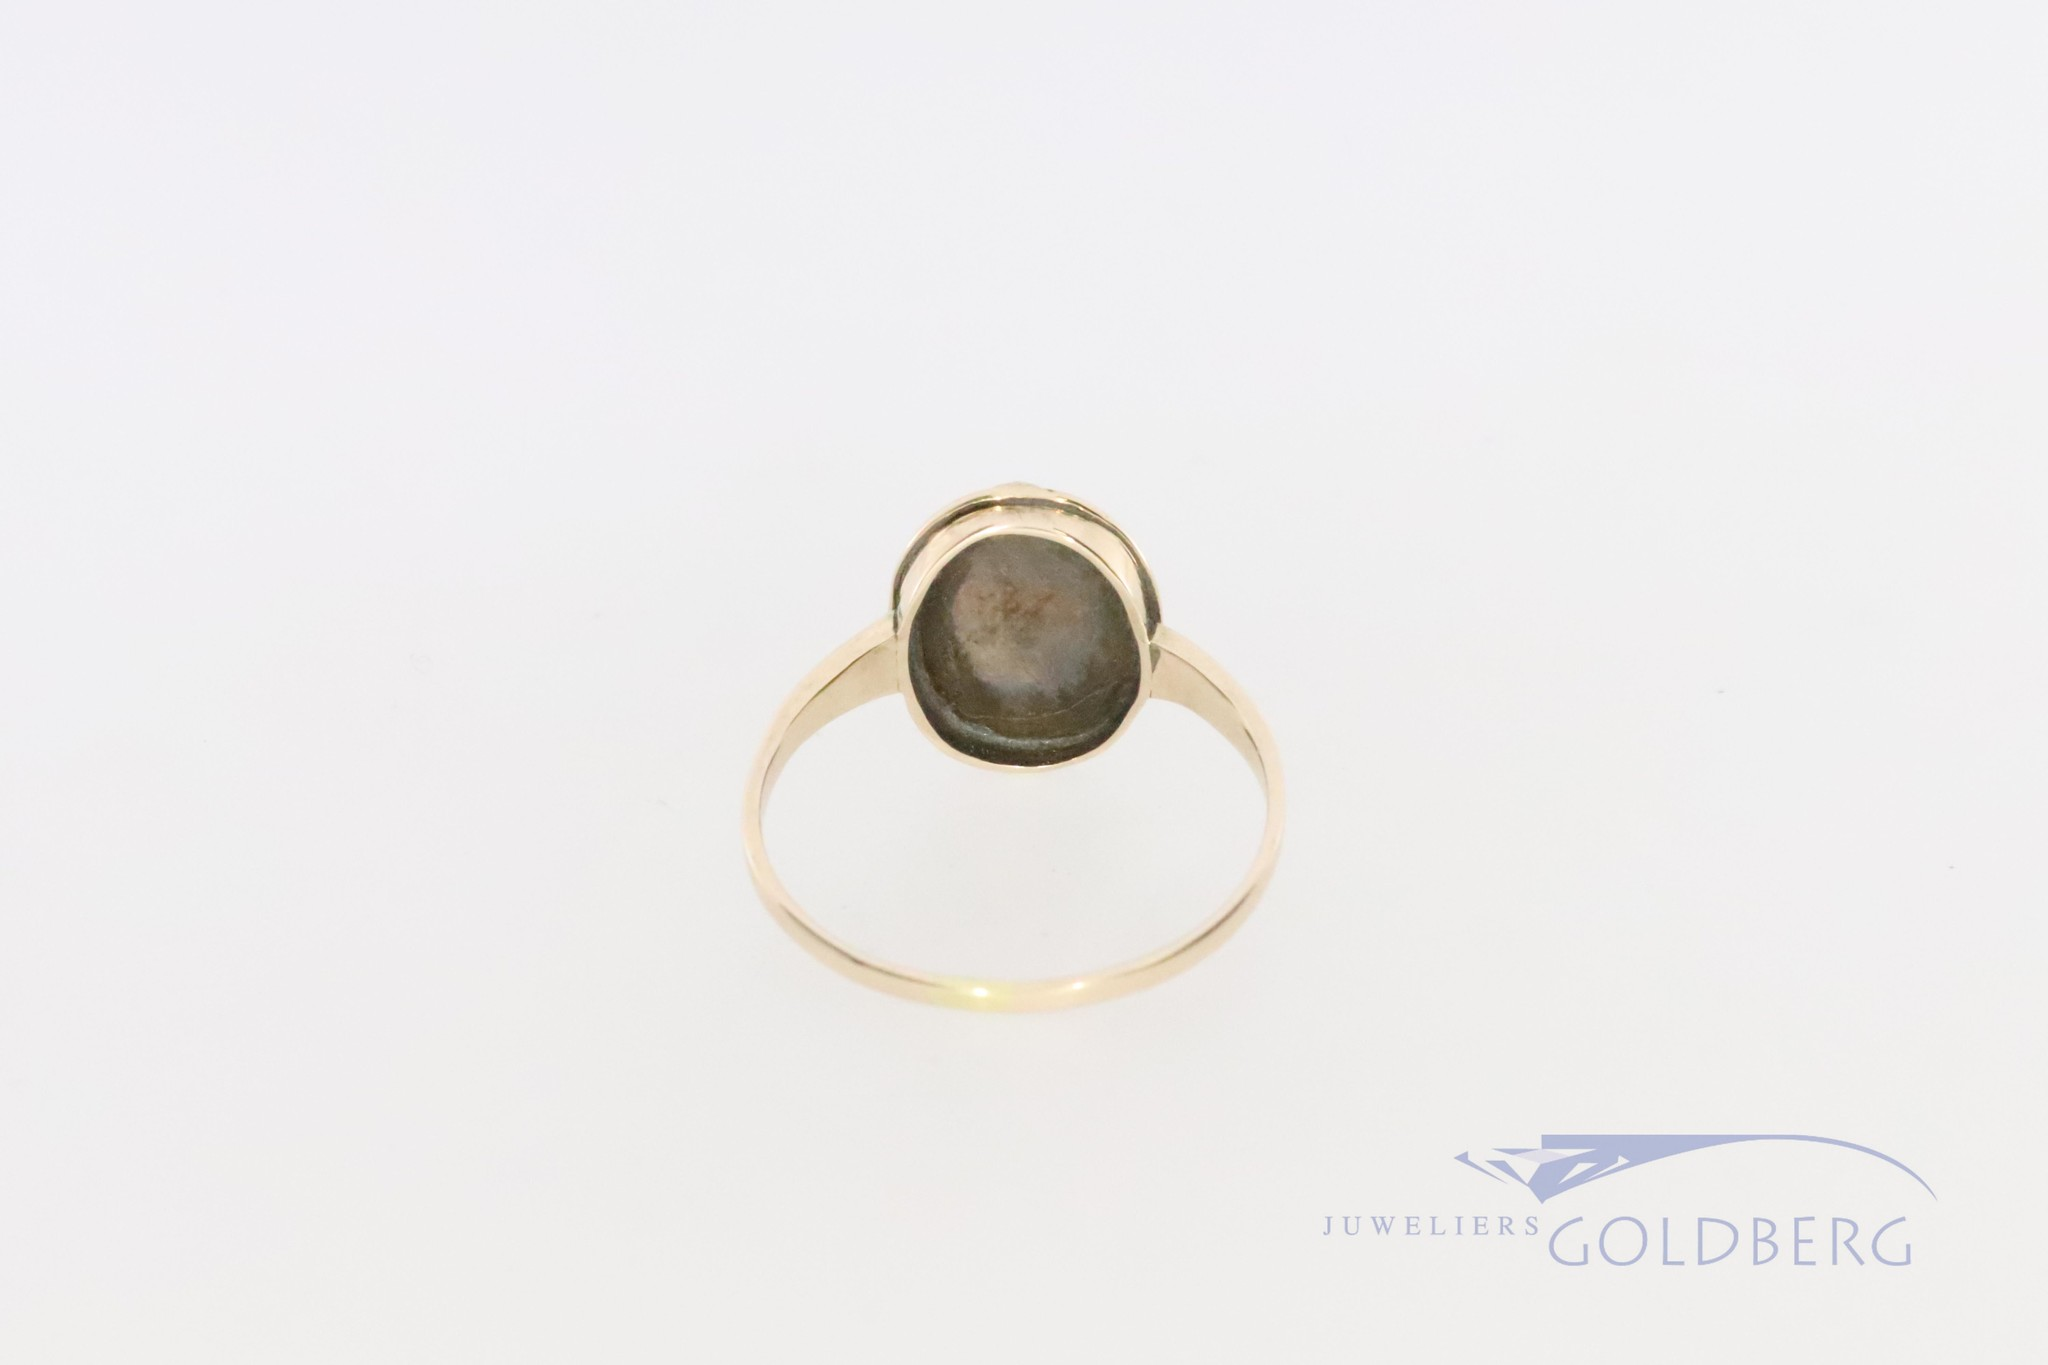 14k gold ring with opal, around 1920